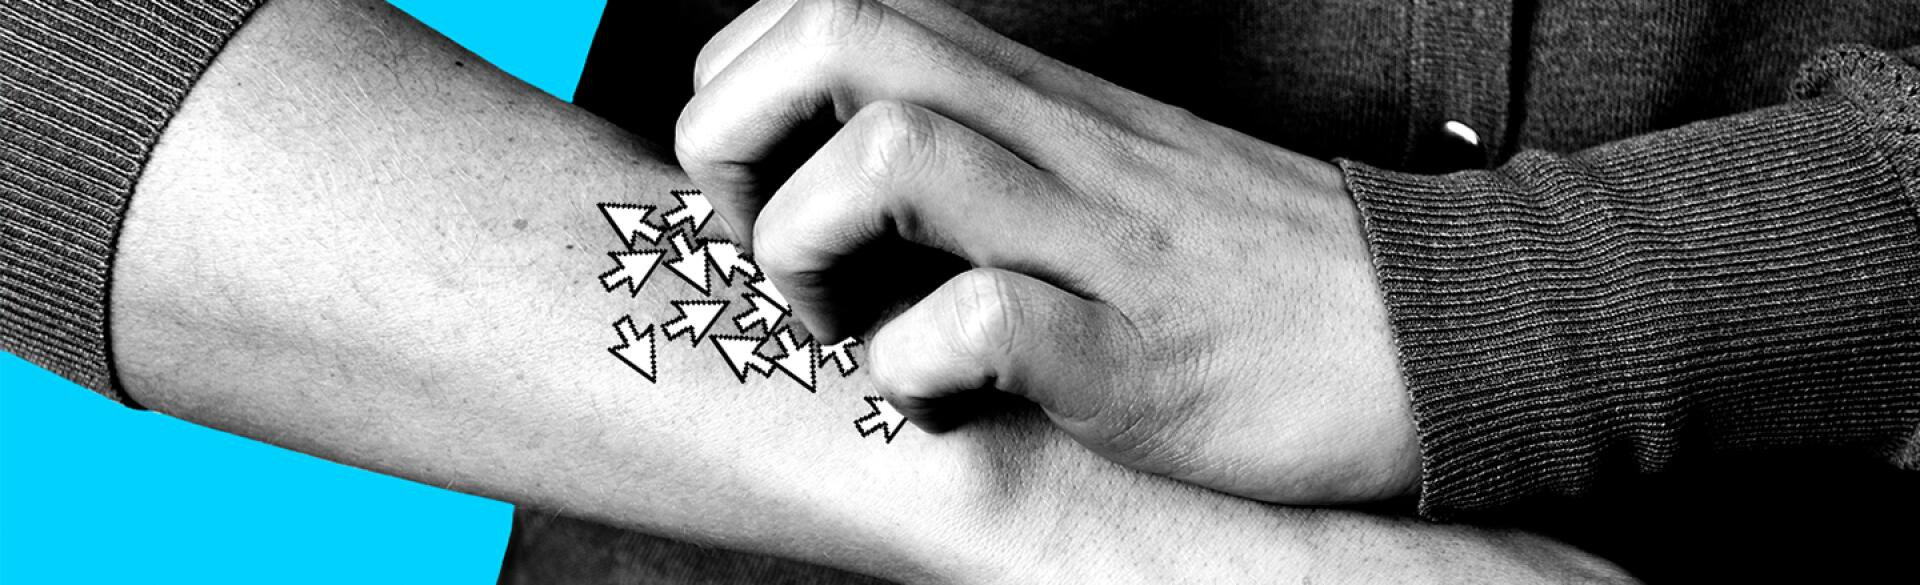 photo_illo_of_woman_scratching_her_arm_with_mouse_click_icons_on_it_digital_hypochondria_by_elena_scotti_1440x584.jpg